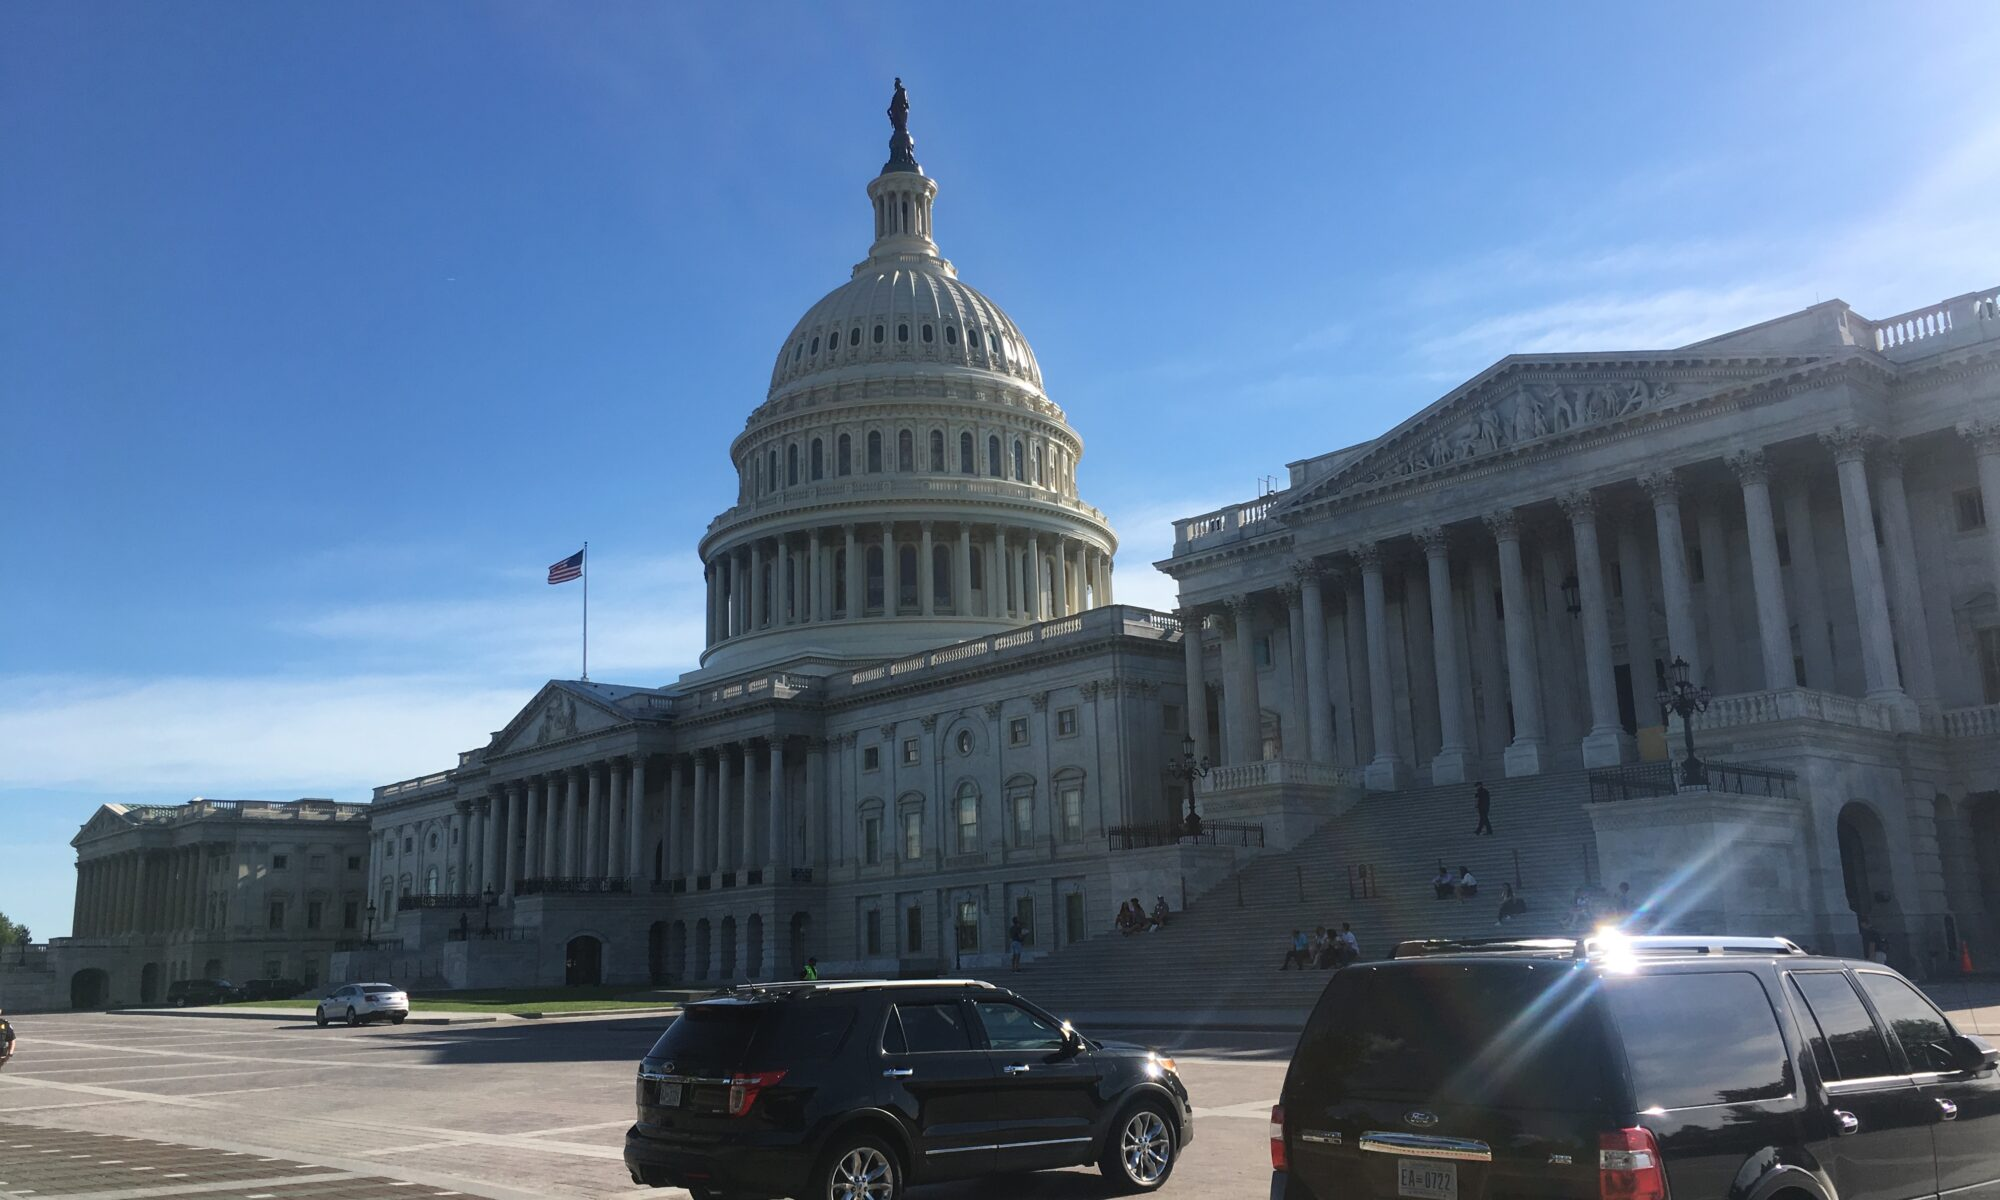 The U.S. Capitol Building under blue skies